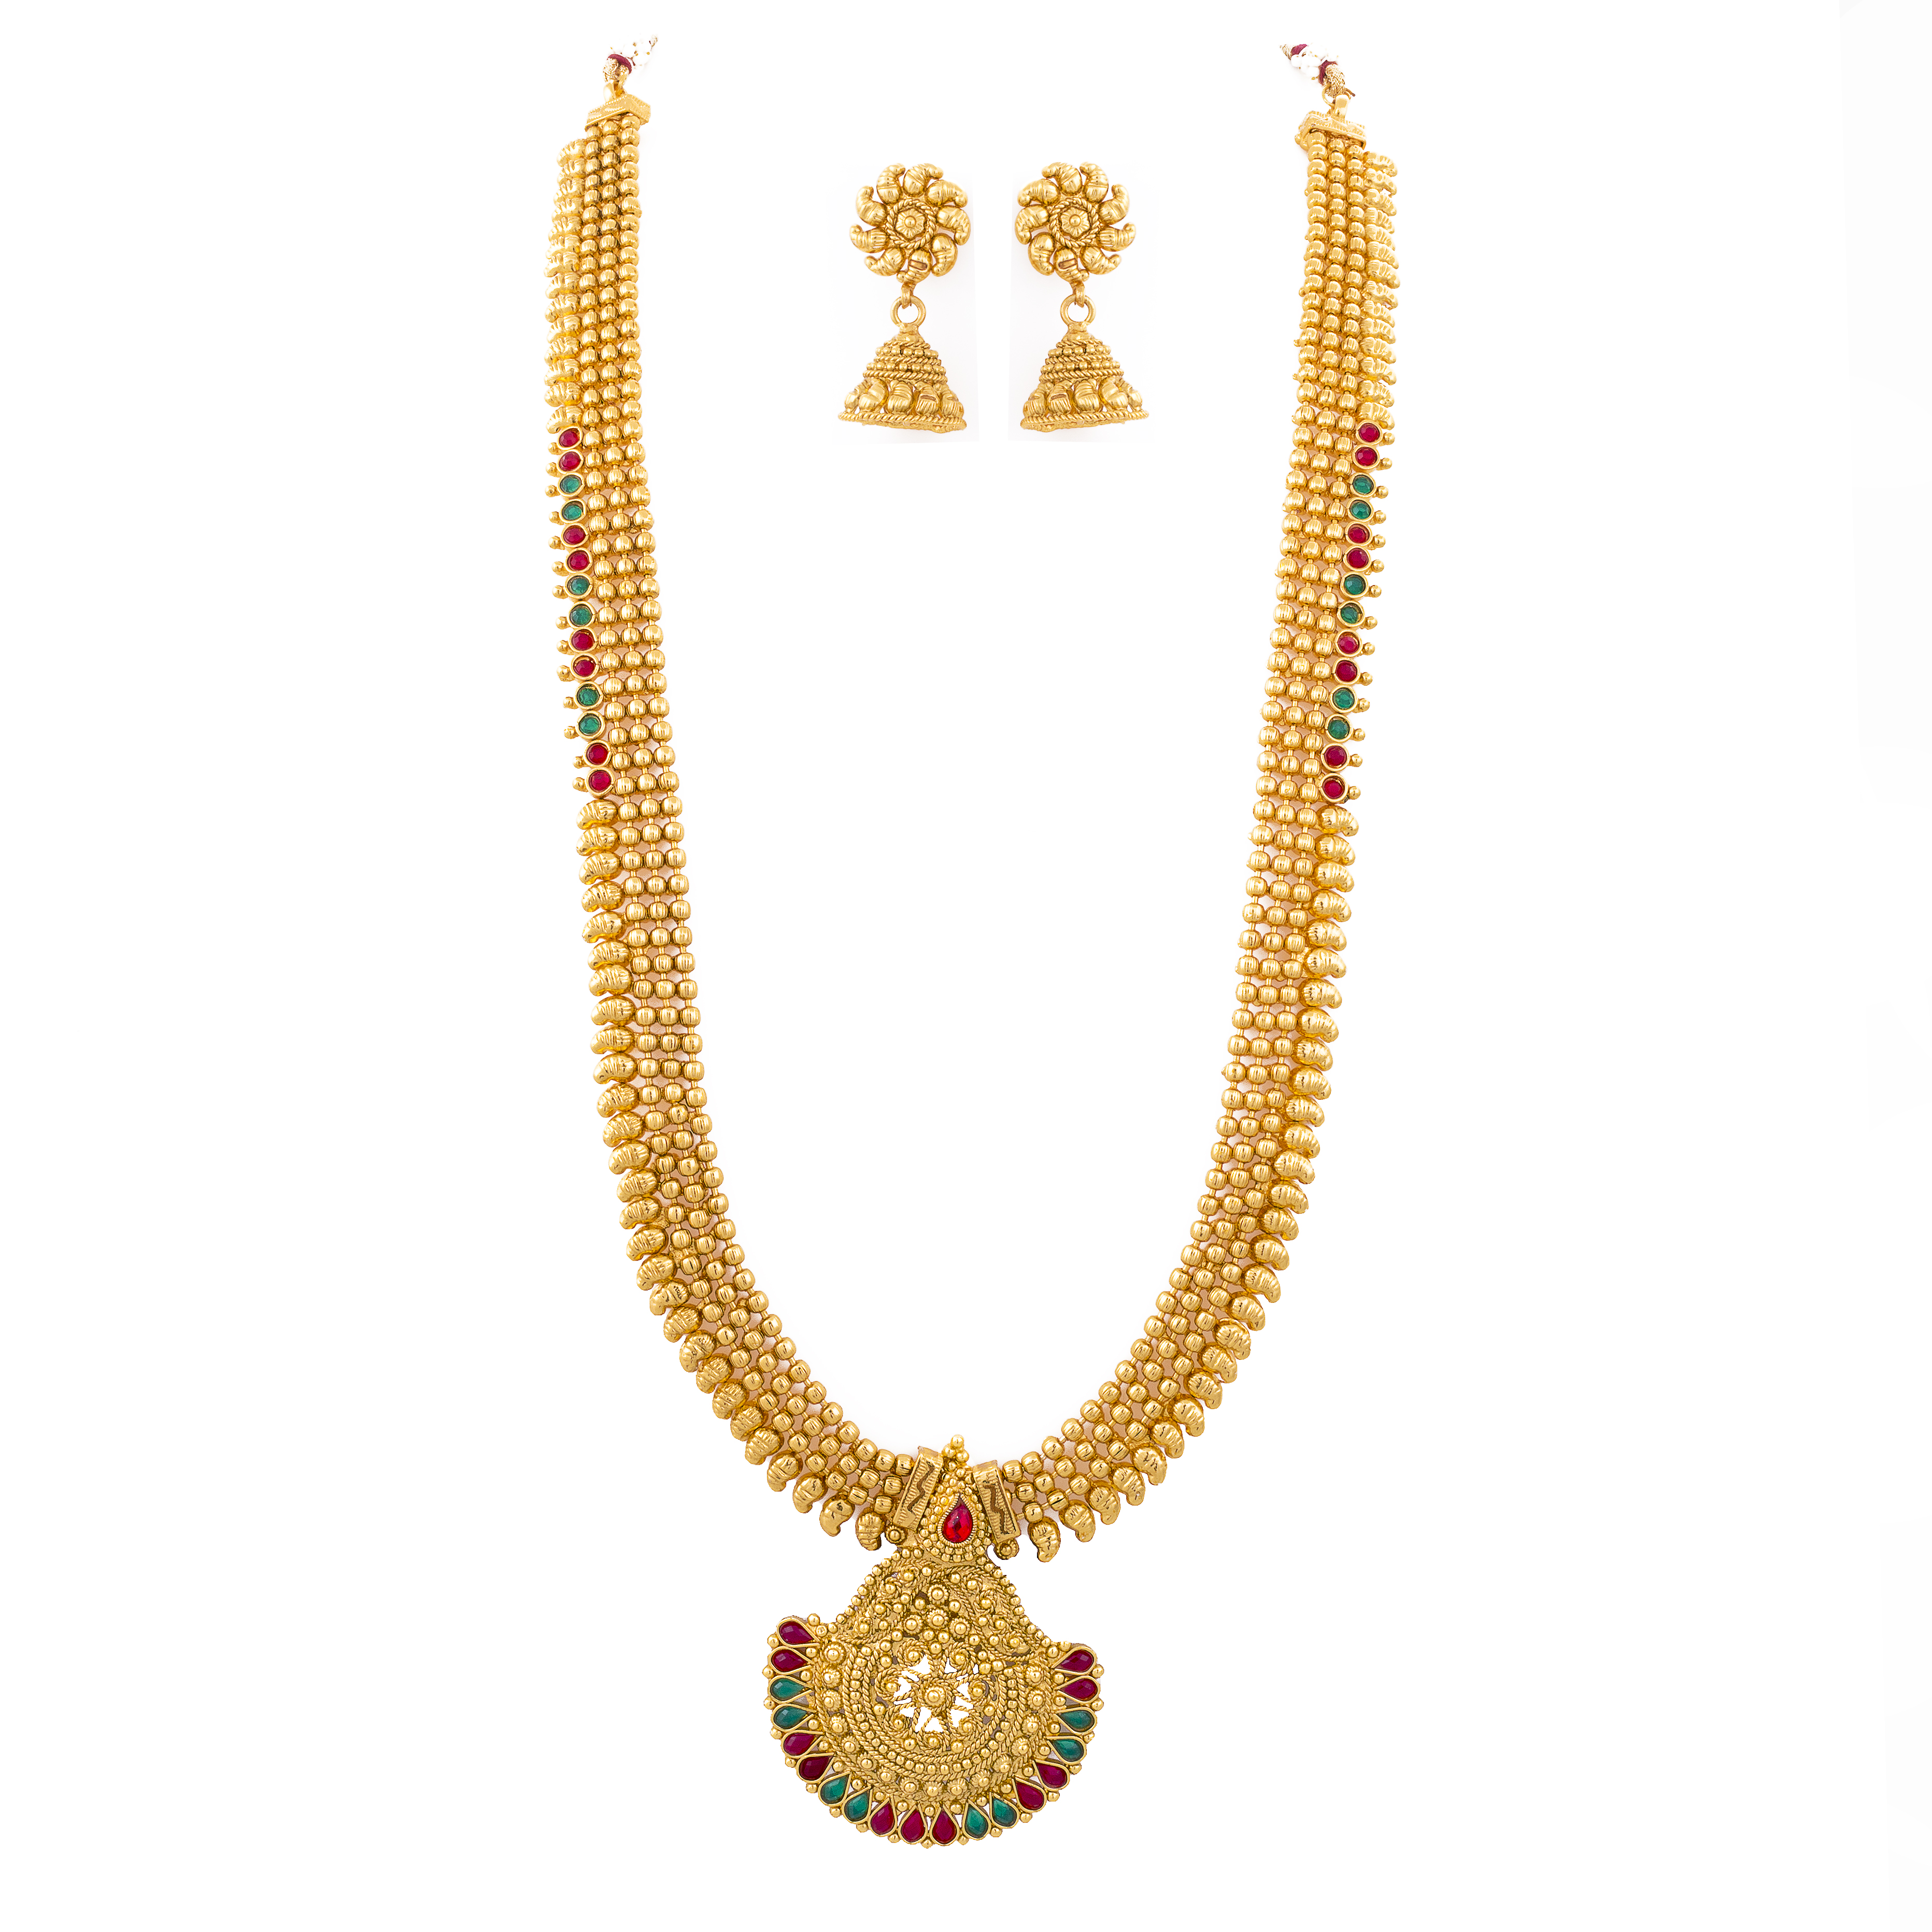 be24a4608f ONE GRAM GOLD PLATED LONG NECKLACE SET WITH JHUMKA - Buy For Change LLP -  2340976